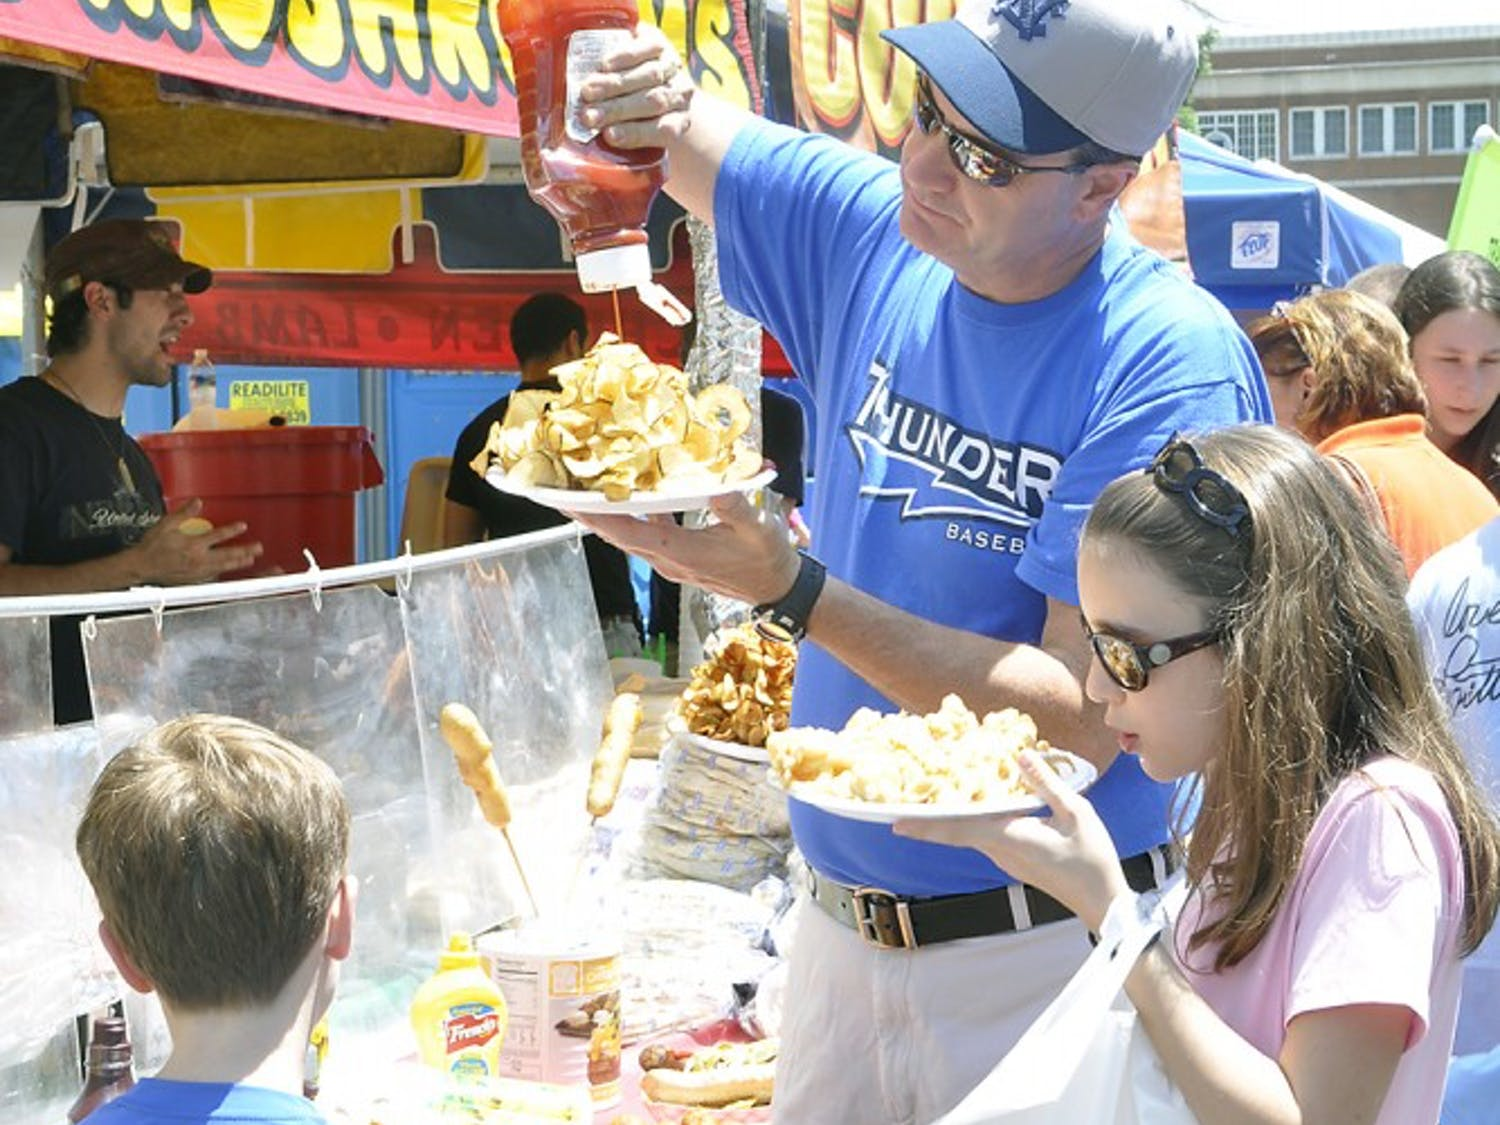 """UNC alumnus Chip Venable brings his kids, Preston and Hannah, to the festival every year. """"The kids really love it. They love the rides and the balloons and I like to have my barbecue,"""" Venable said."""